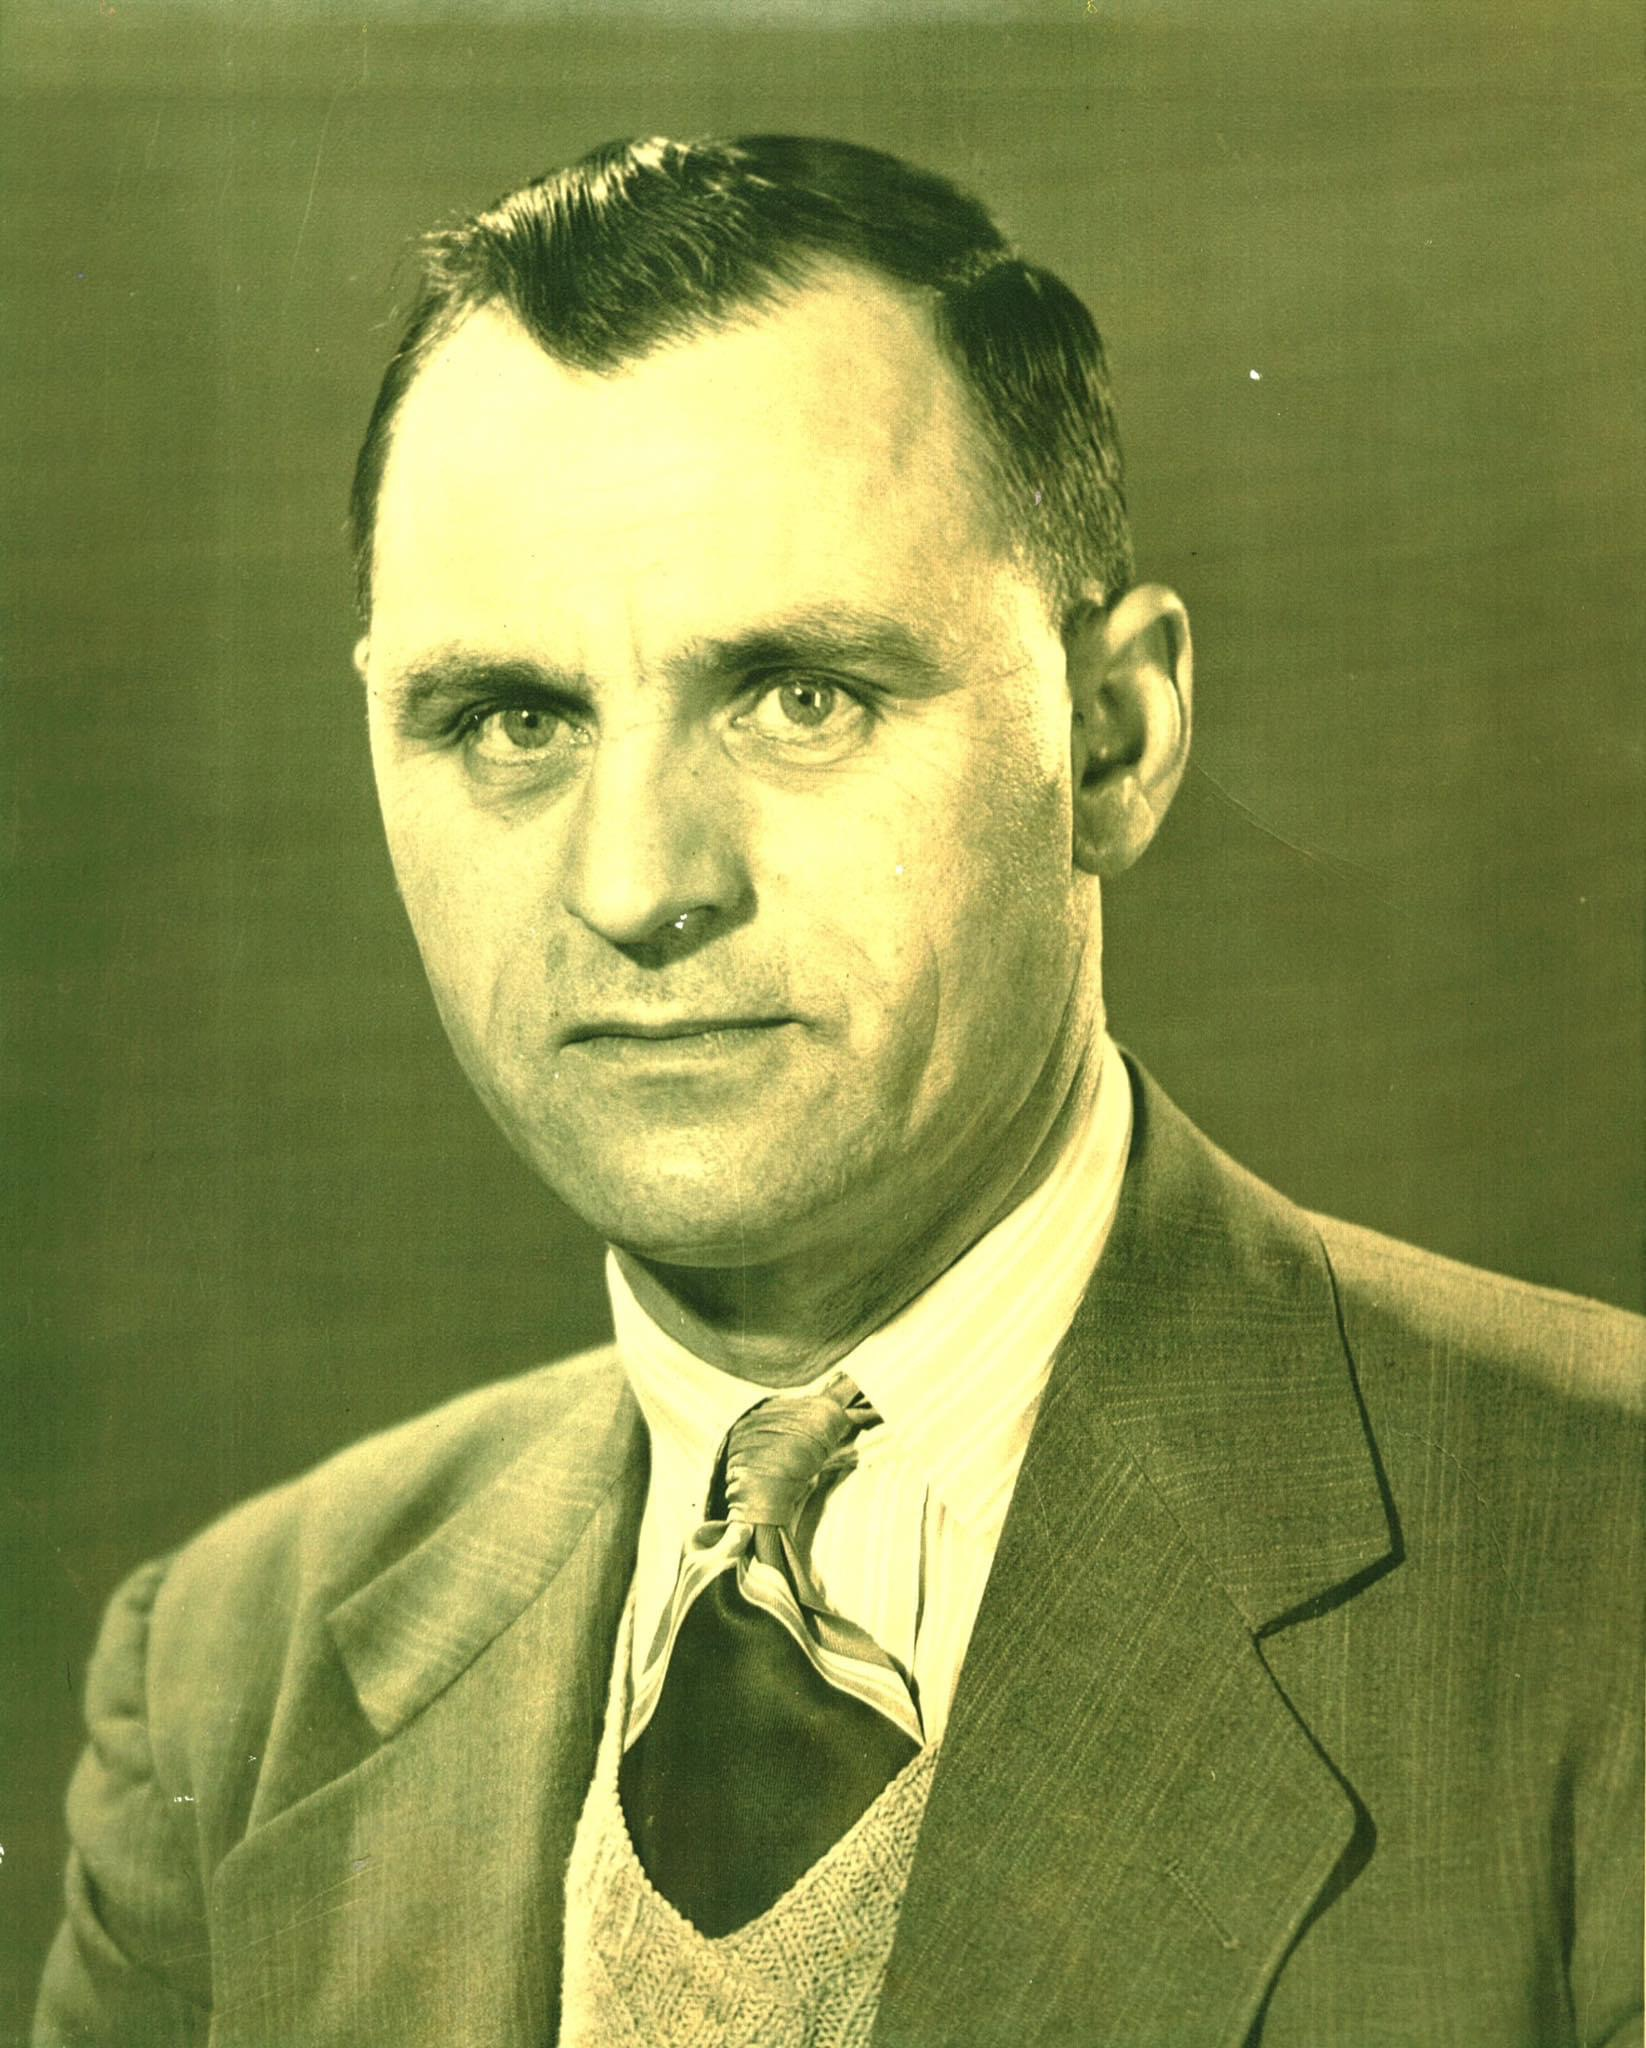 Paul T. Billups (1909-1978) served as Mayor of Ceredo for twenty years, and owned a horse pasture on the land where the park is now located.